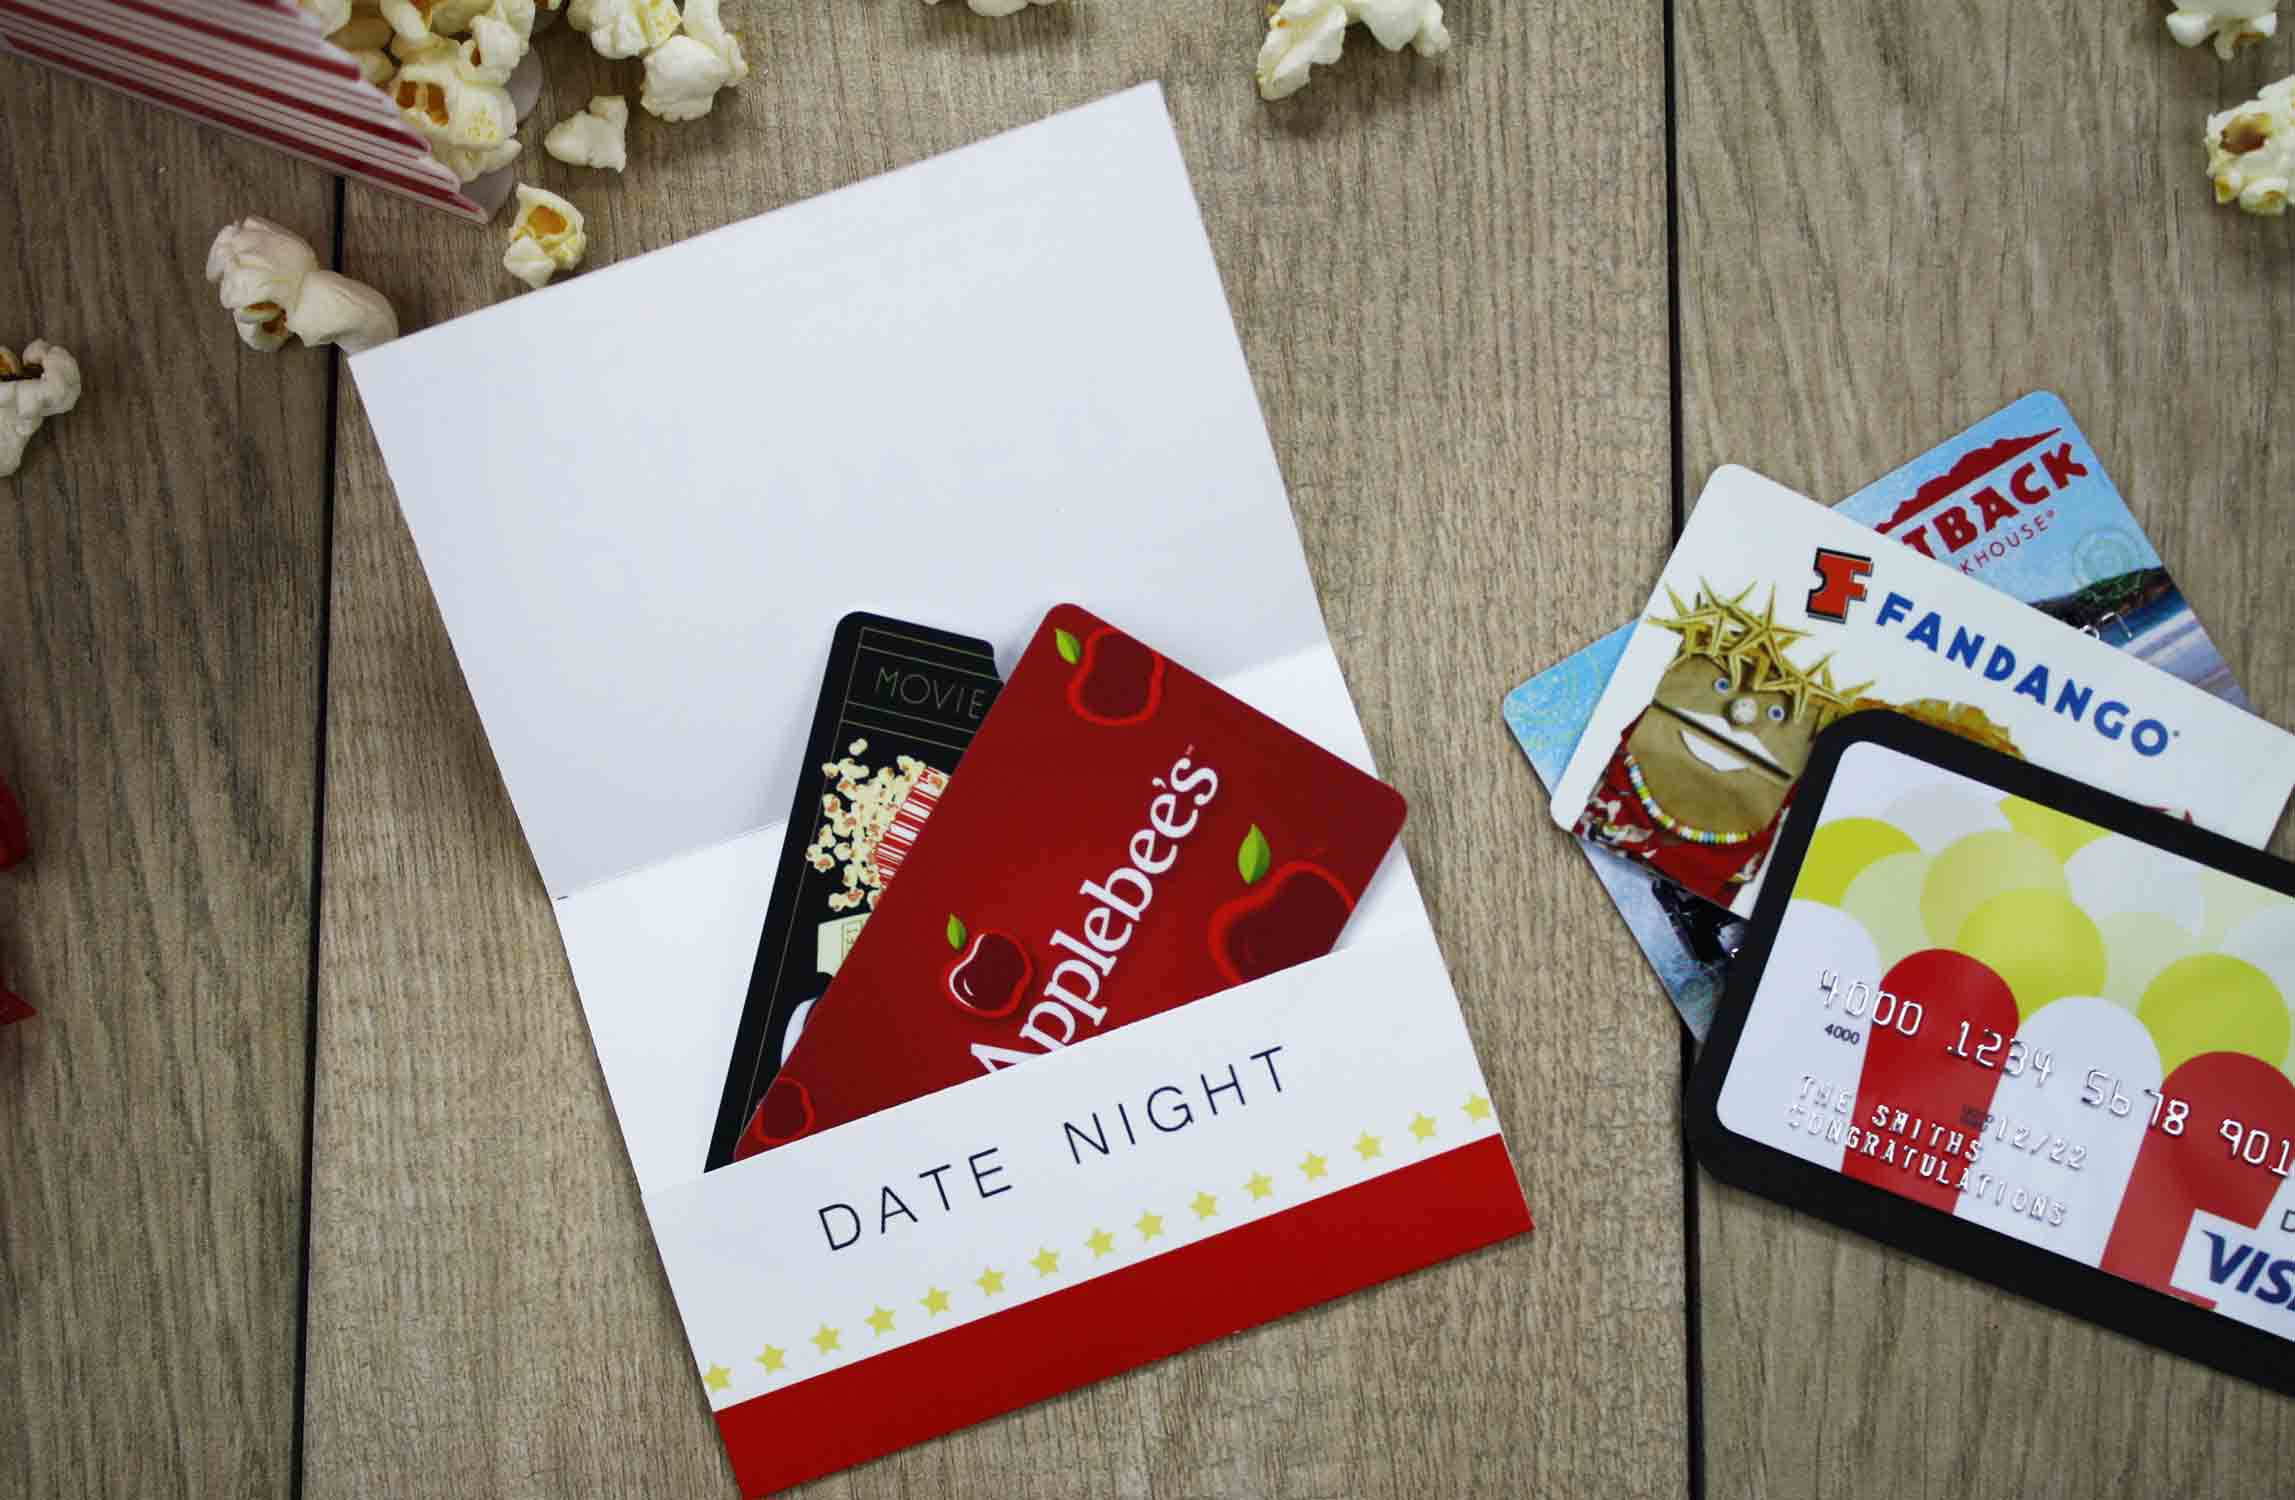 Free printable give date night for a wedding gift gcg folded gift card holder with cards in it negle Choice Image